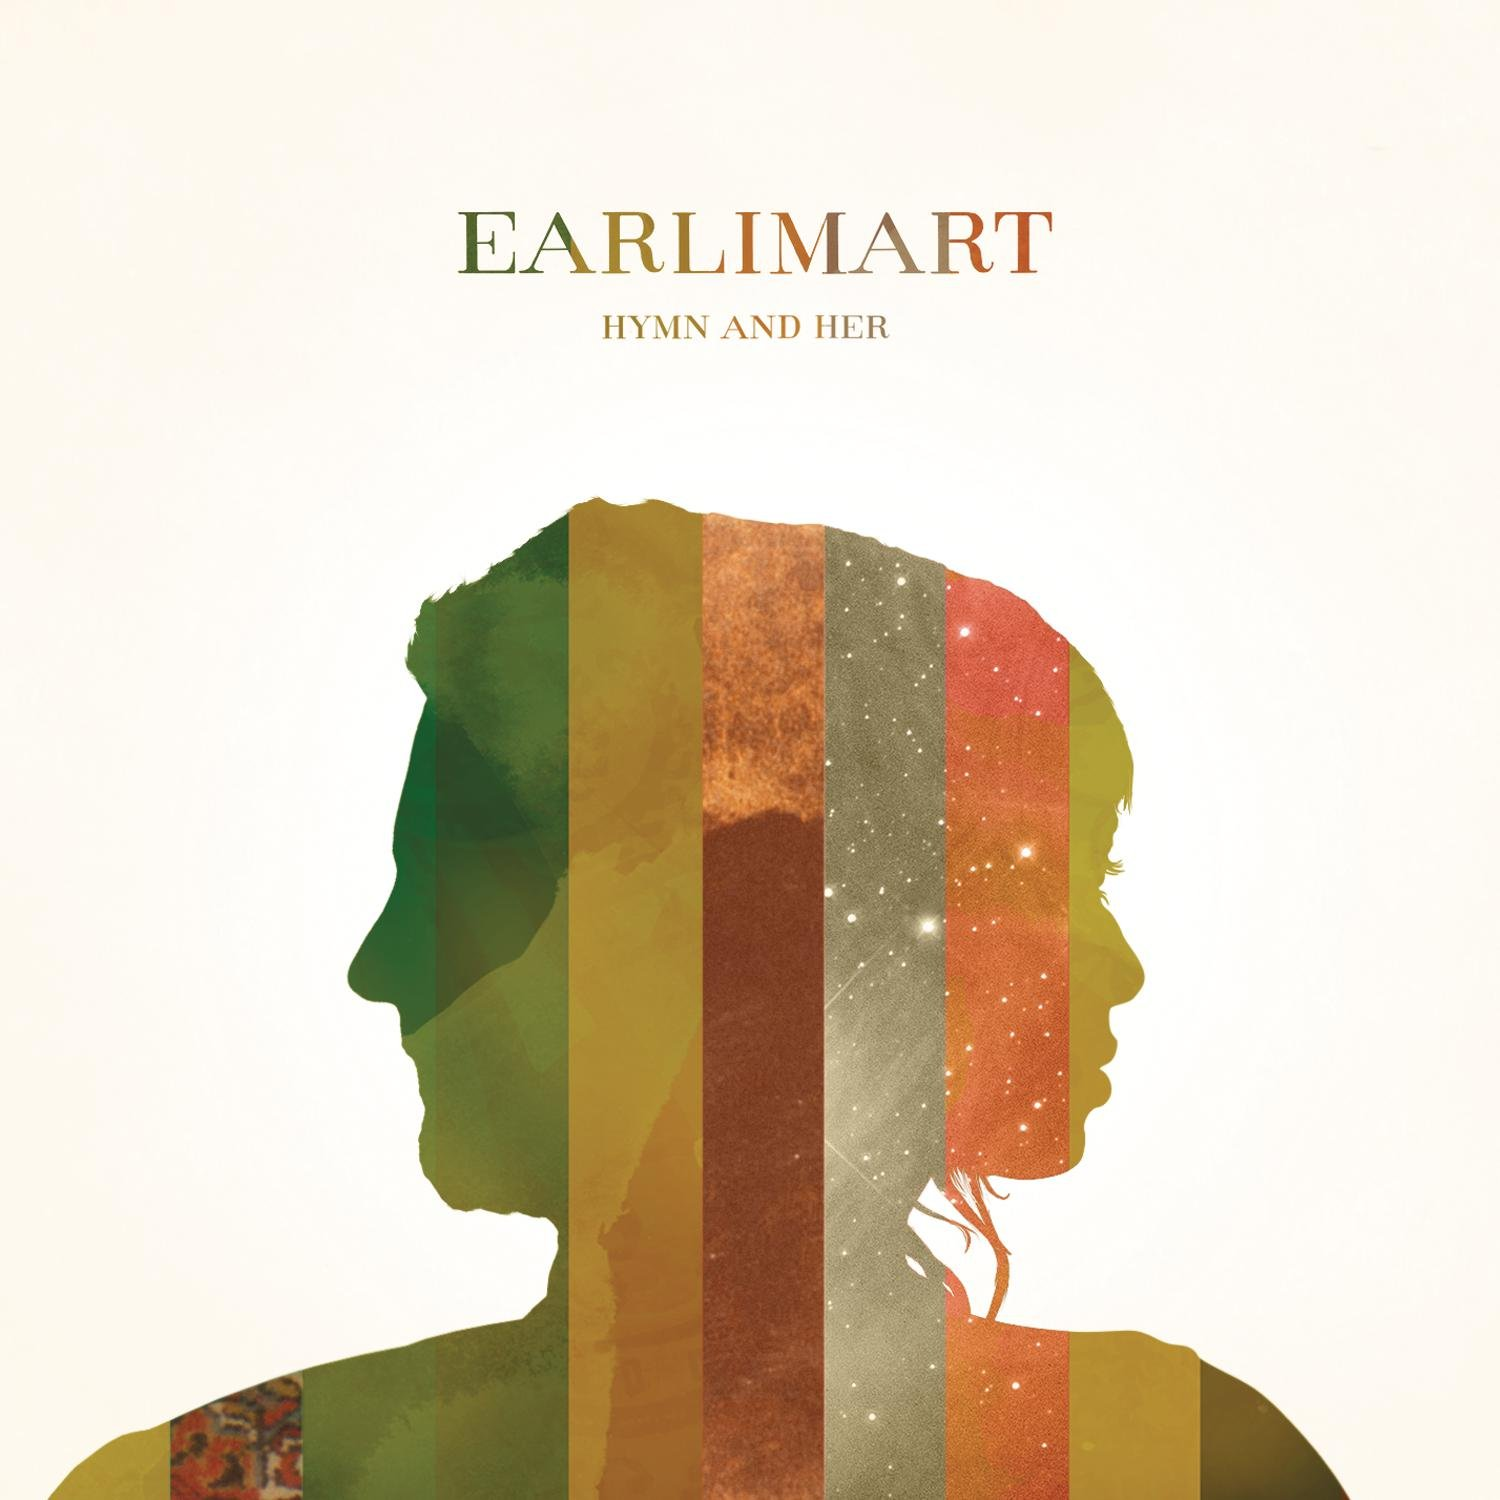 Earlimart, Hymn and Her